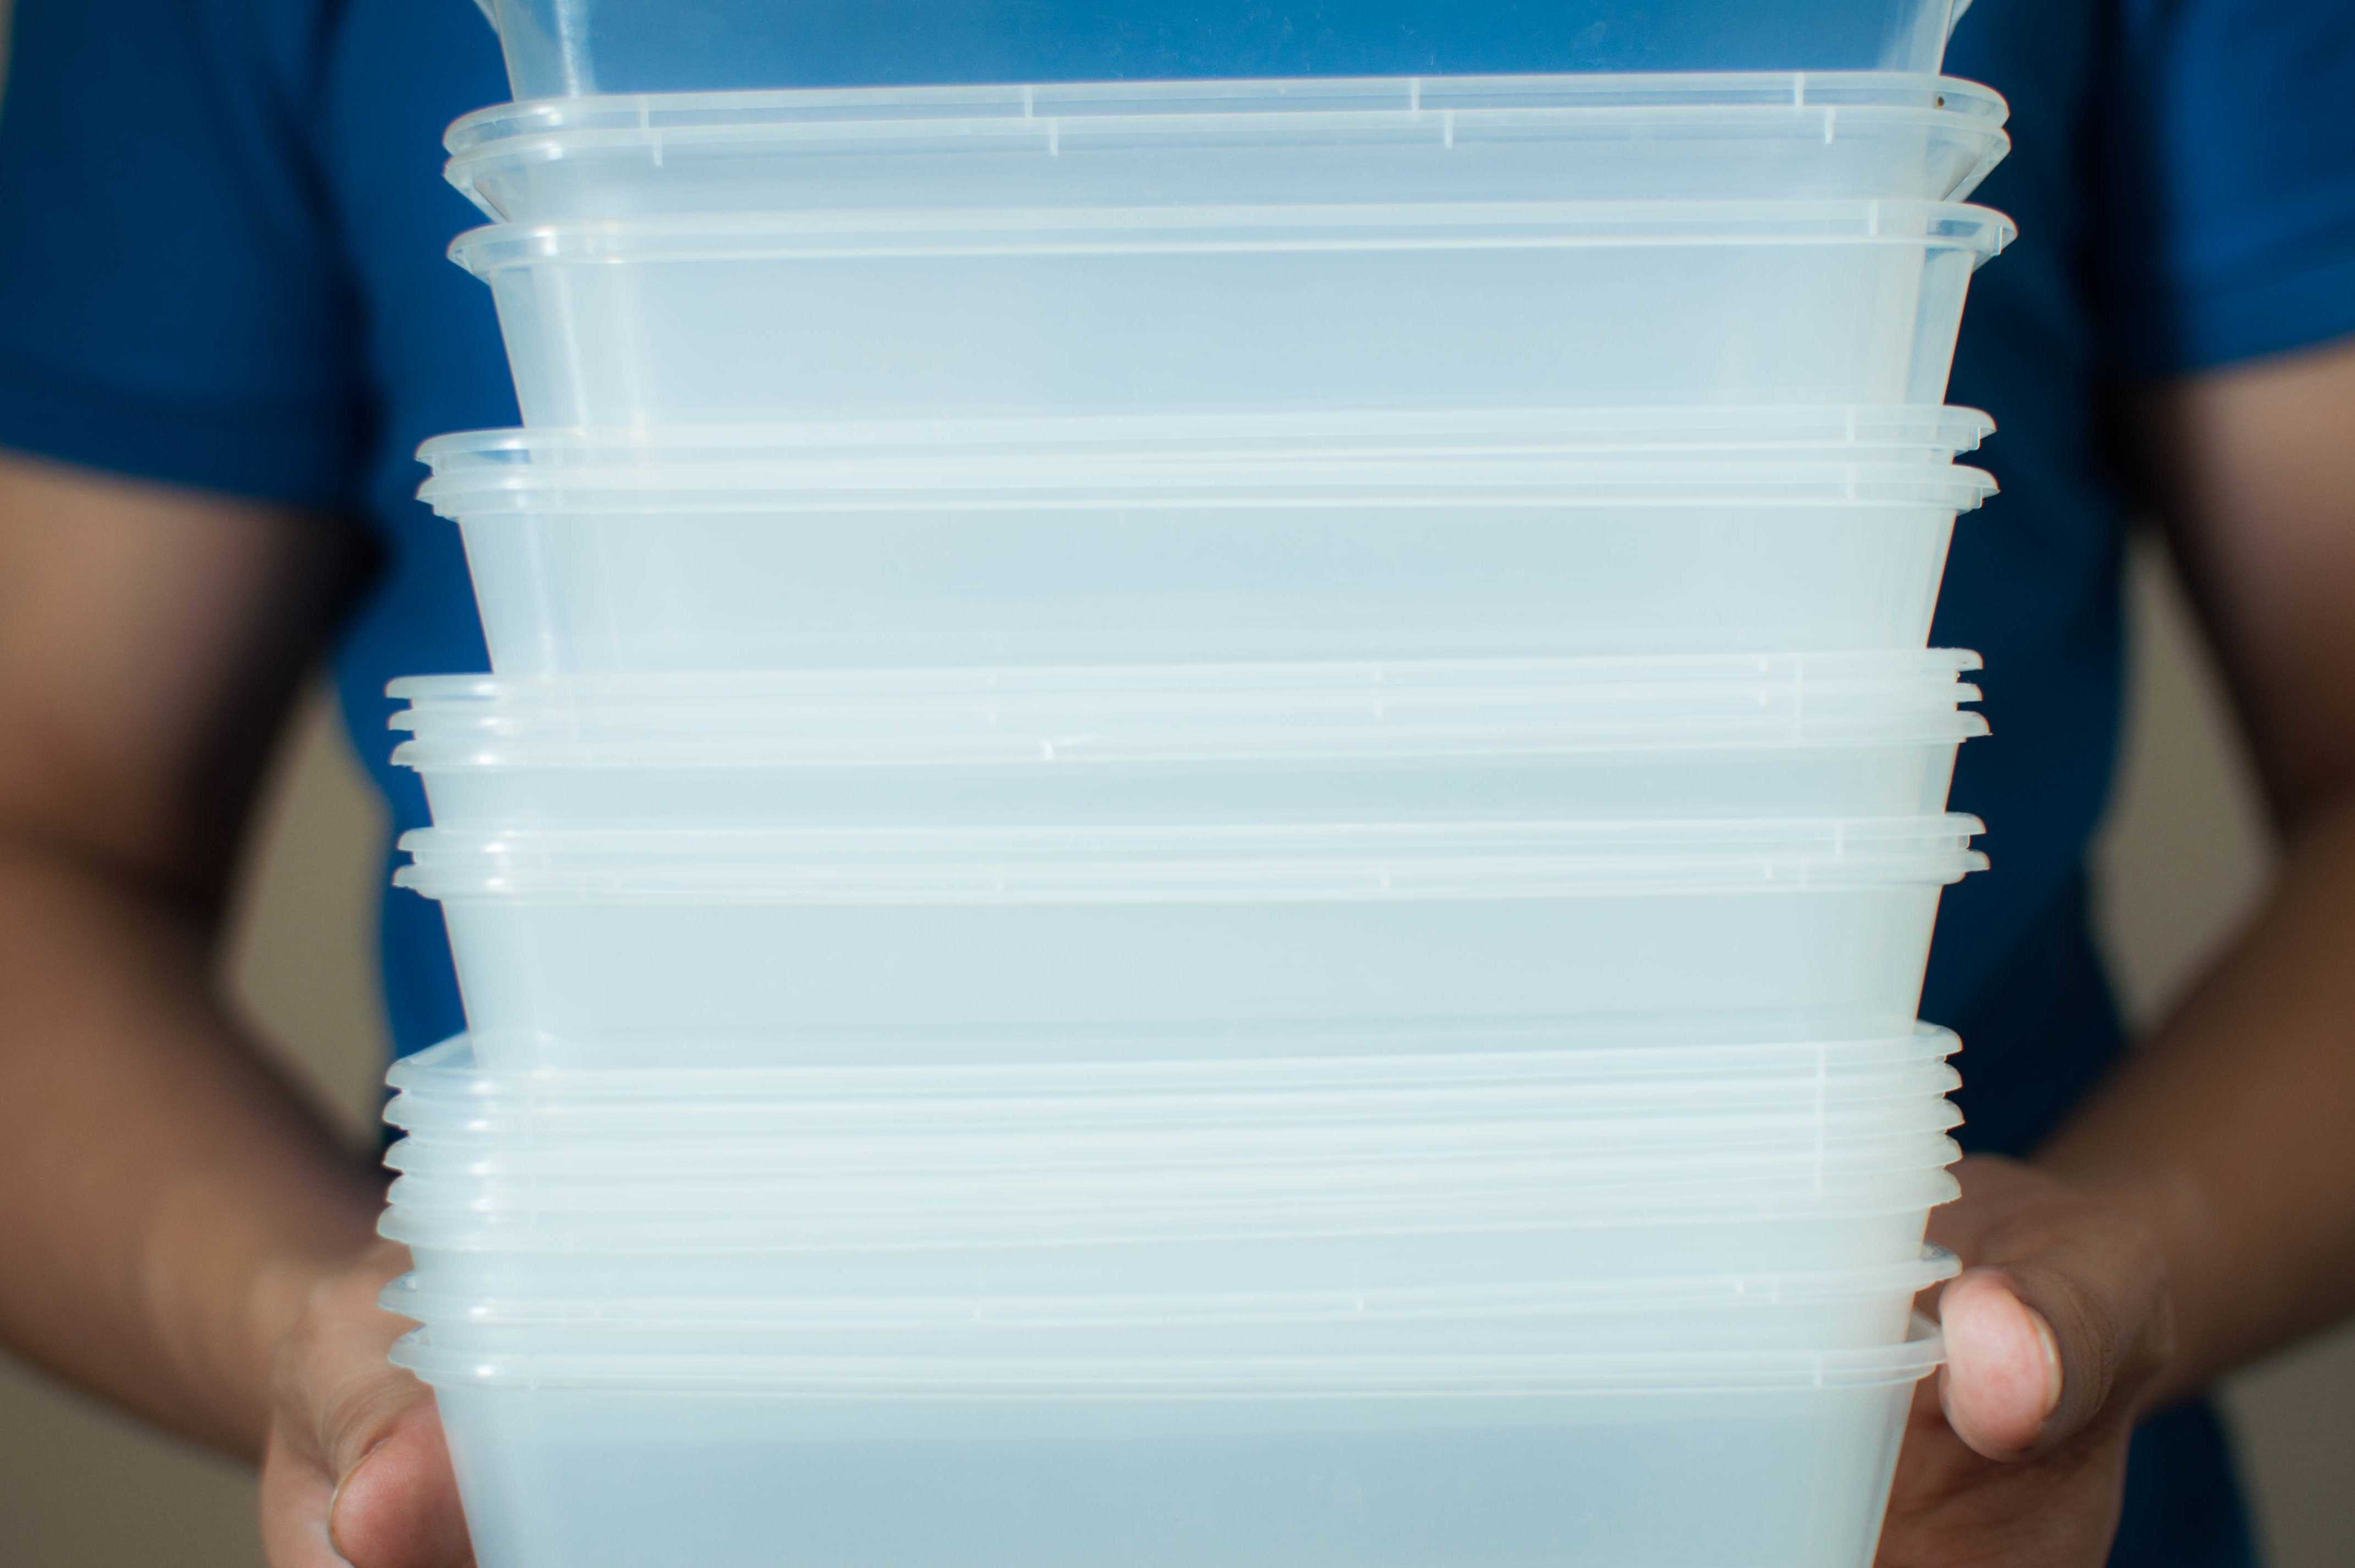 A young man is holding a recyclable plastic food container on a white background